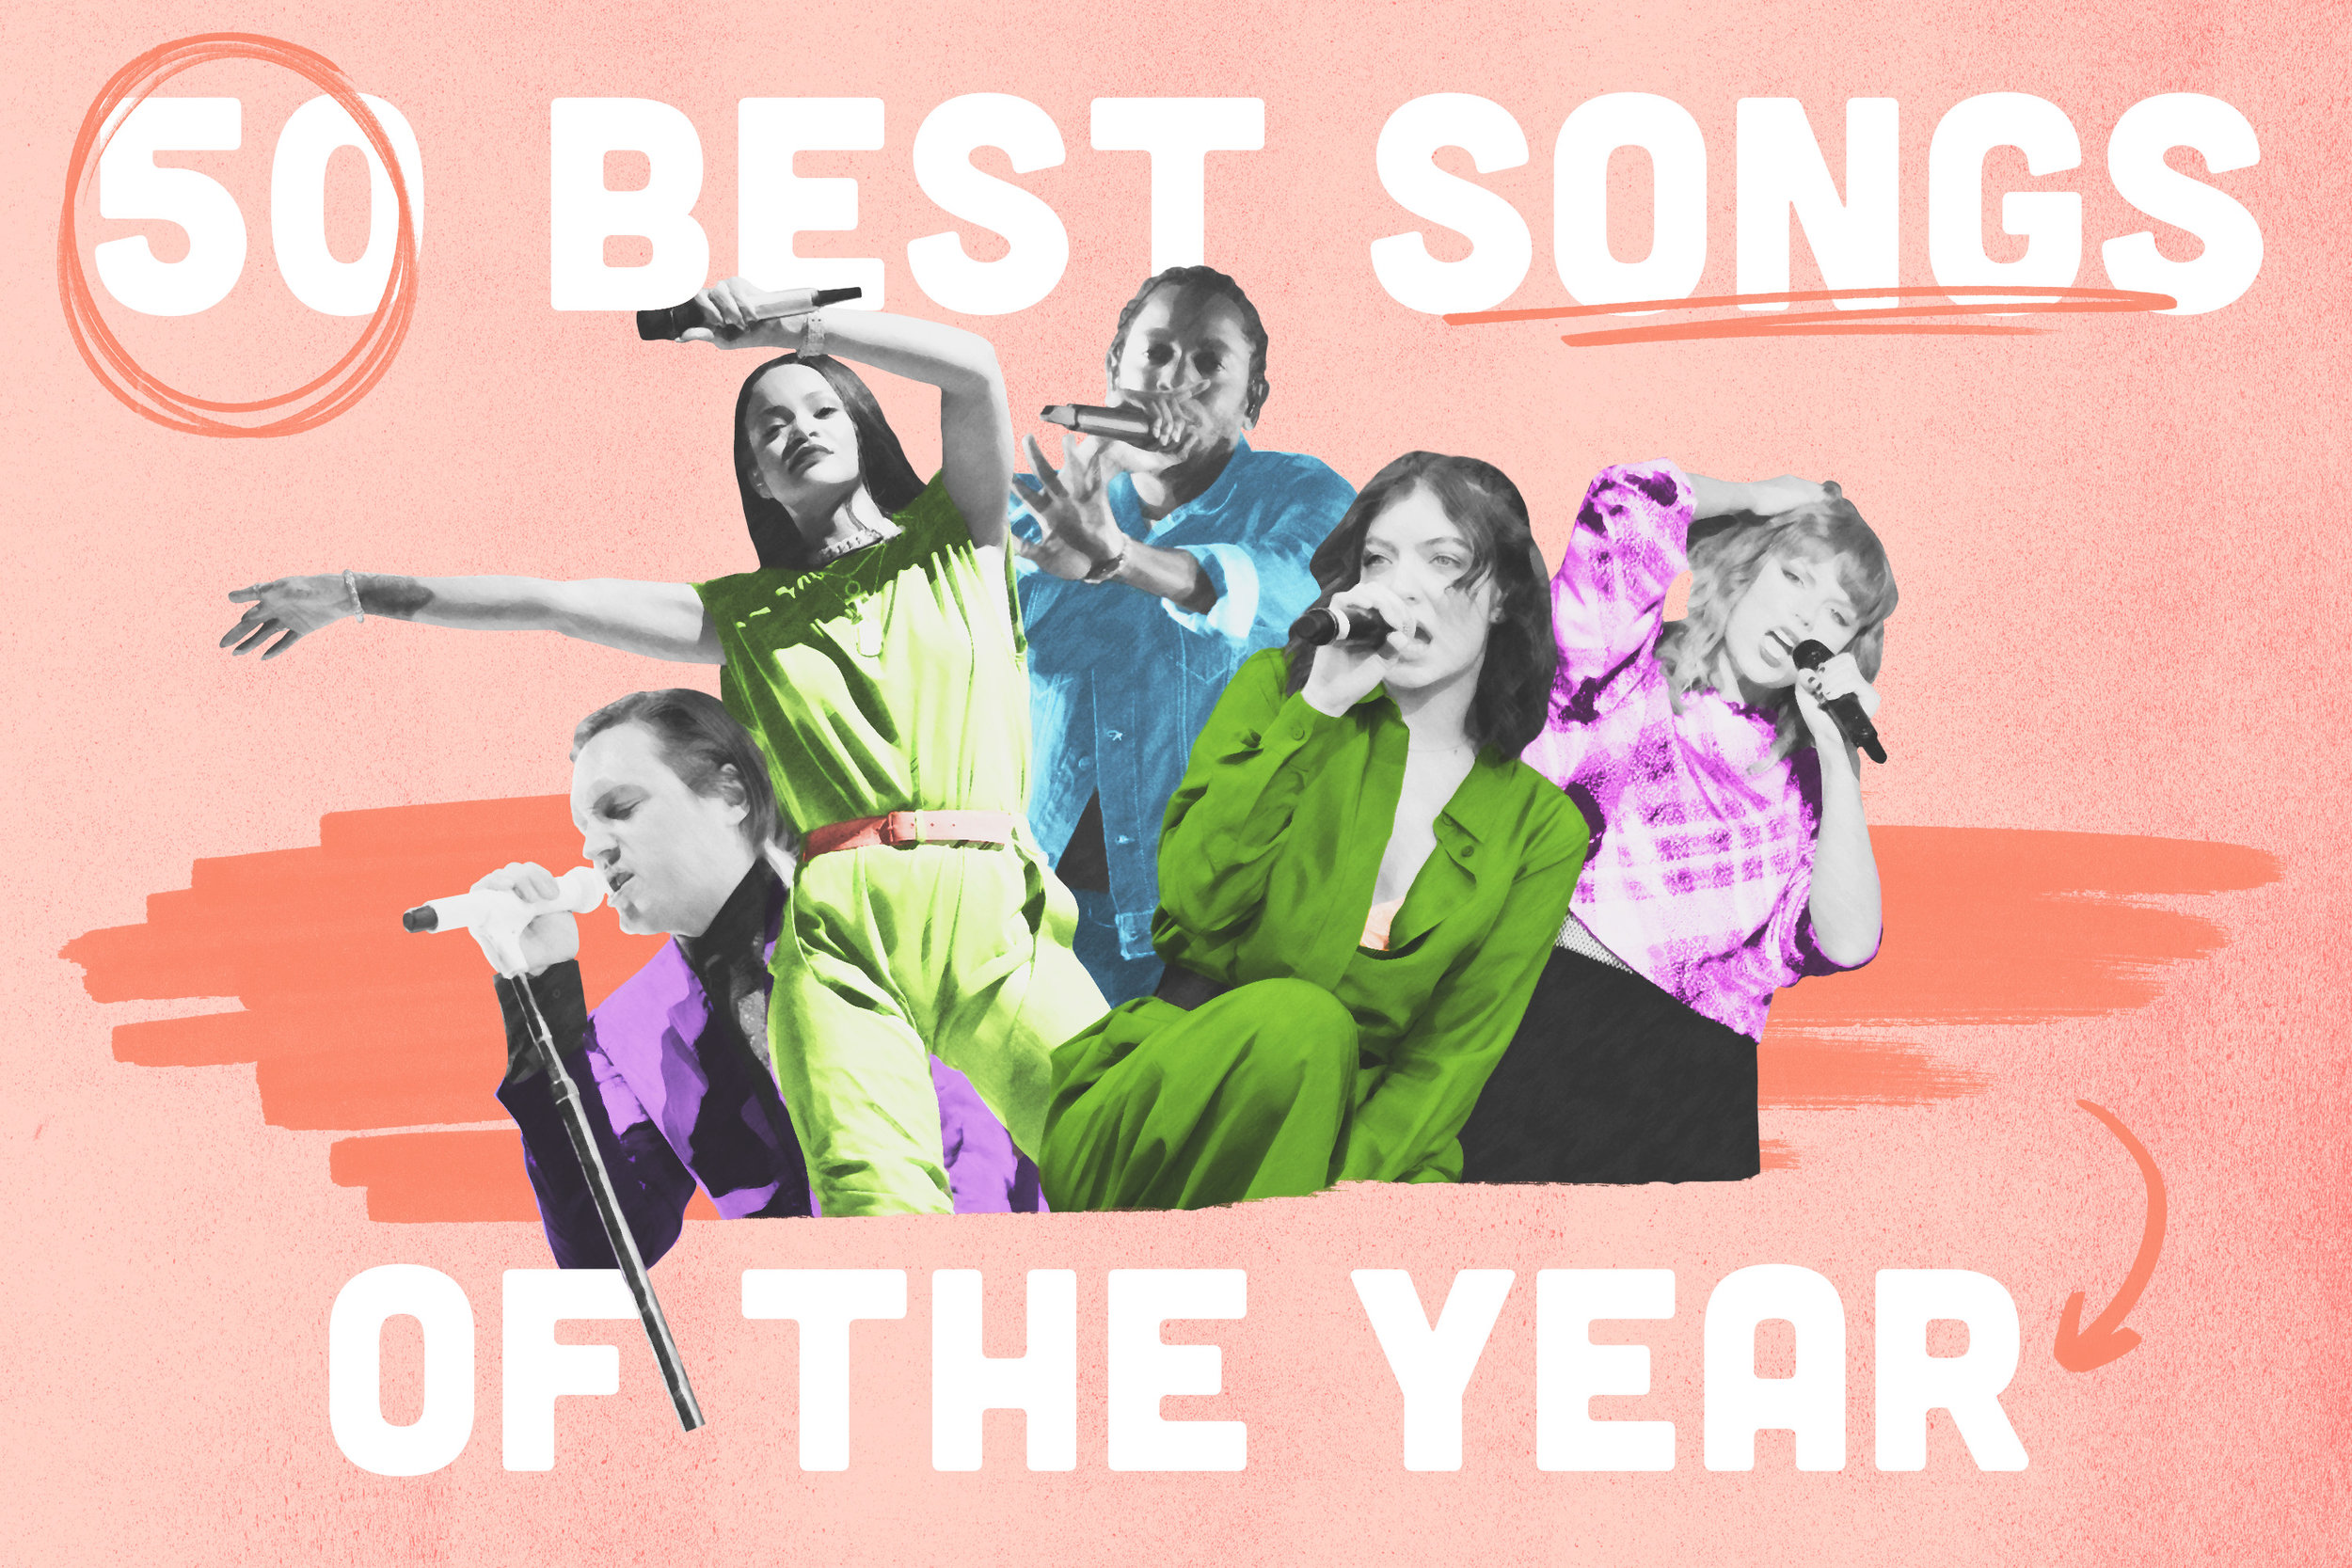 50-Best-Songs-of-the-Year.jpg